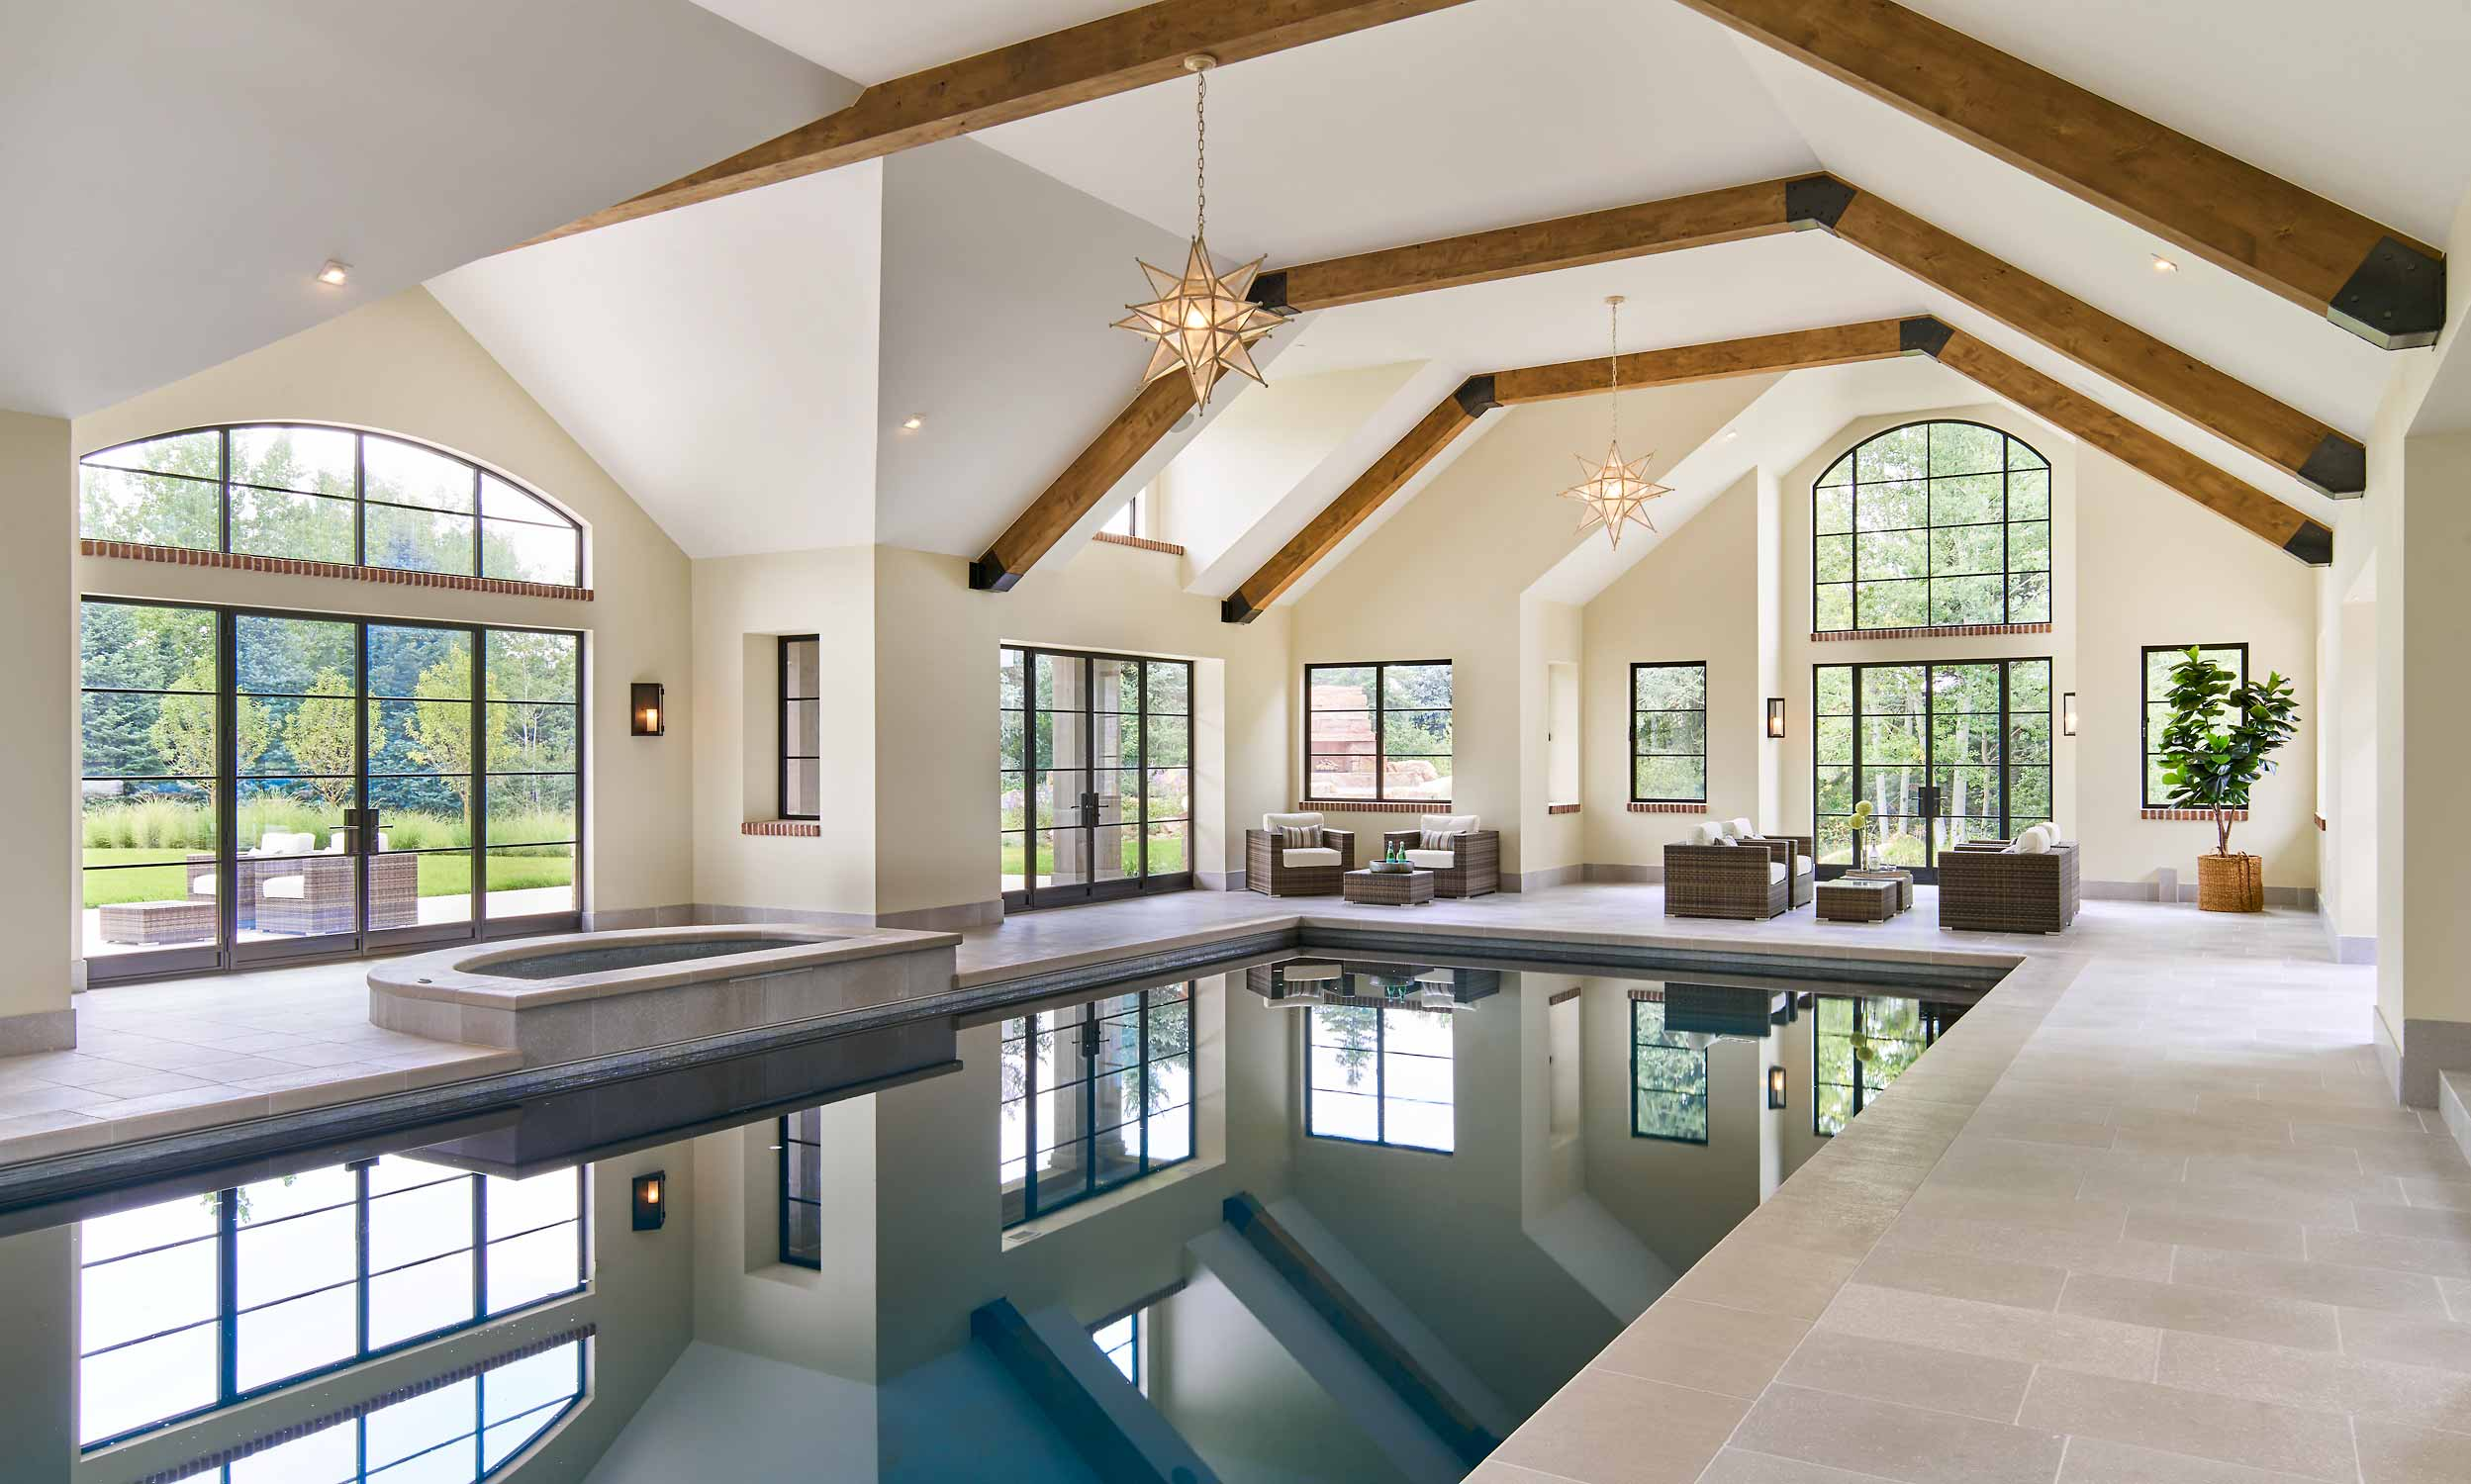 Brombal's Custom Steel Windows and Doors are used in this pool room